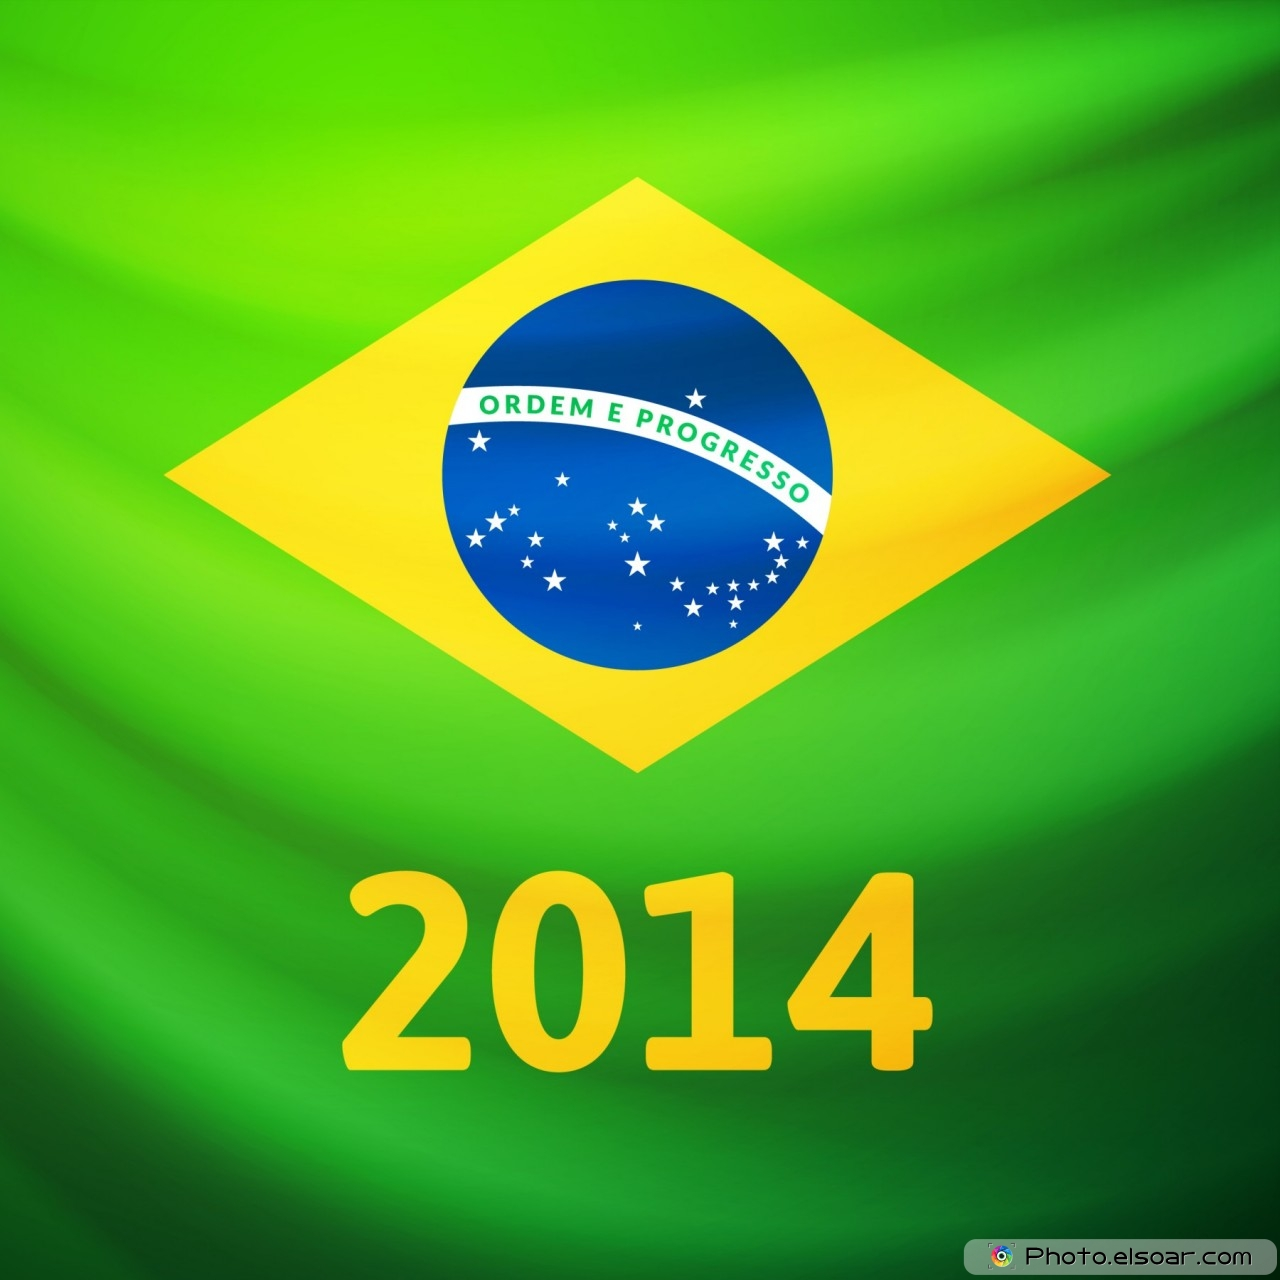 Waving fabric flag of Brazil with 2014